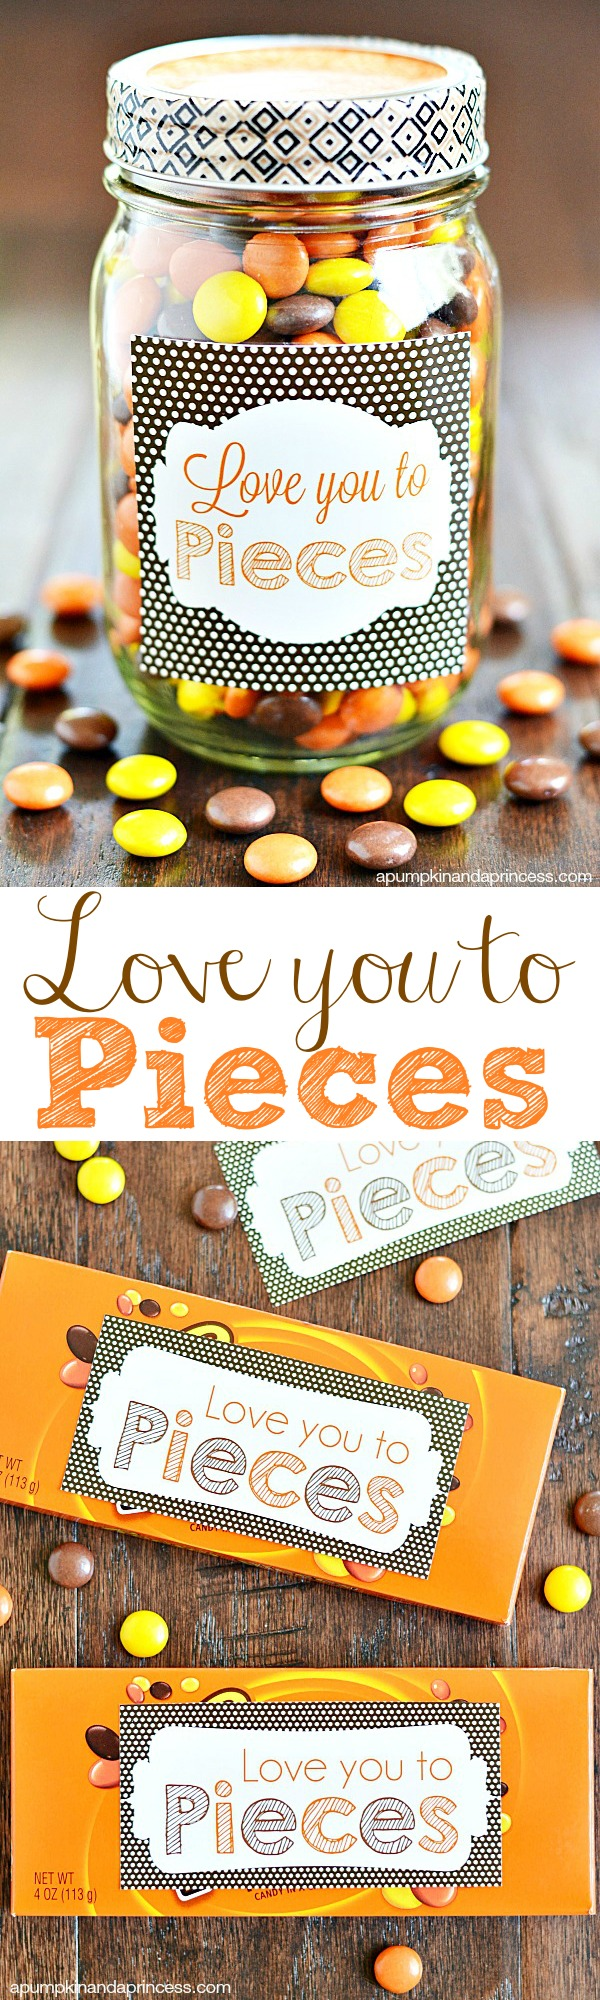 6 Images of I Love You To Pieces Printable Tag